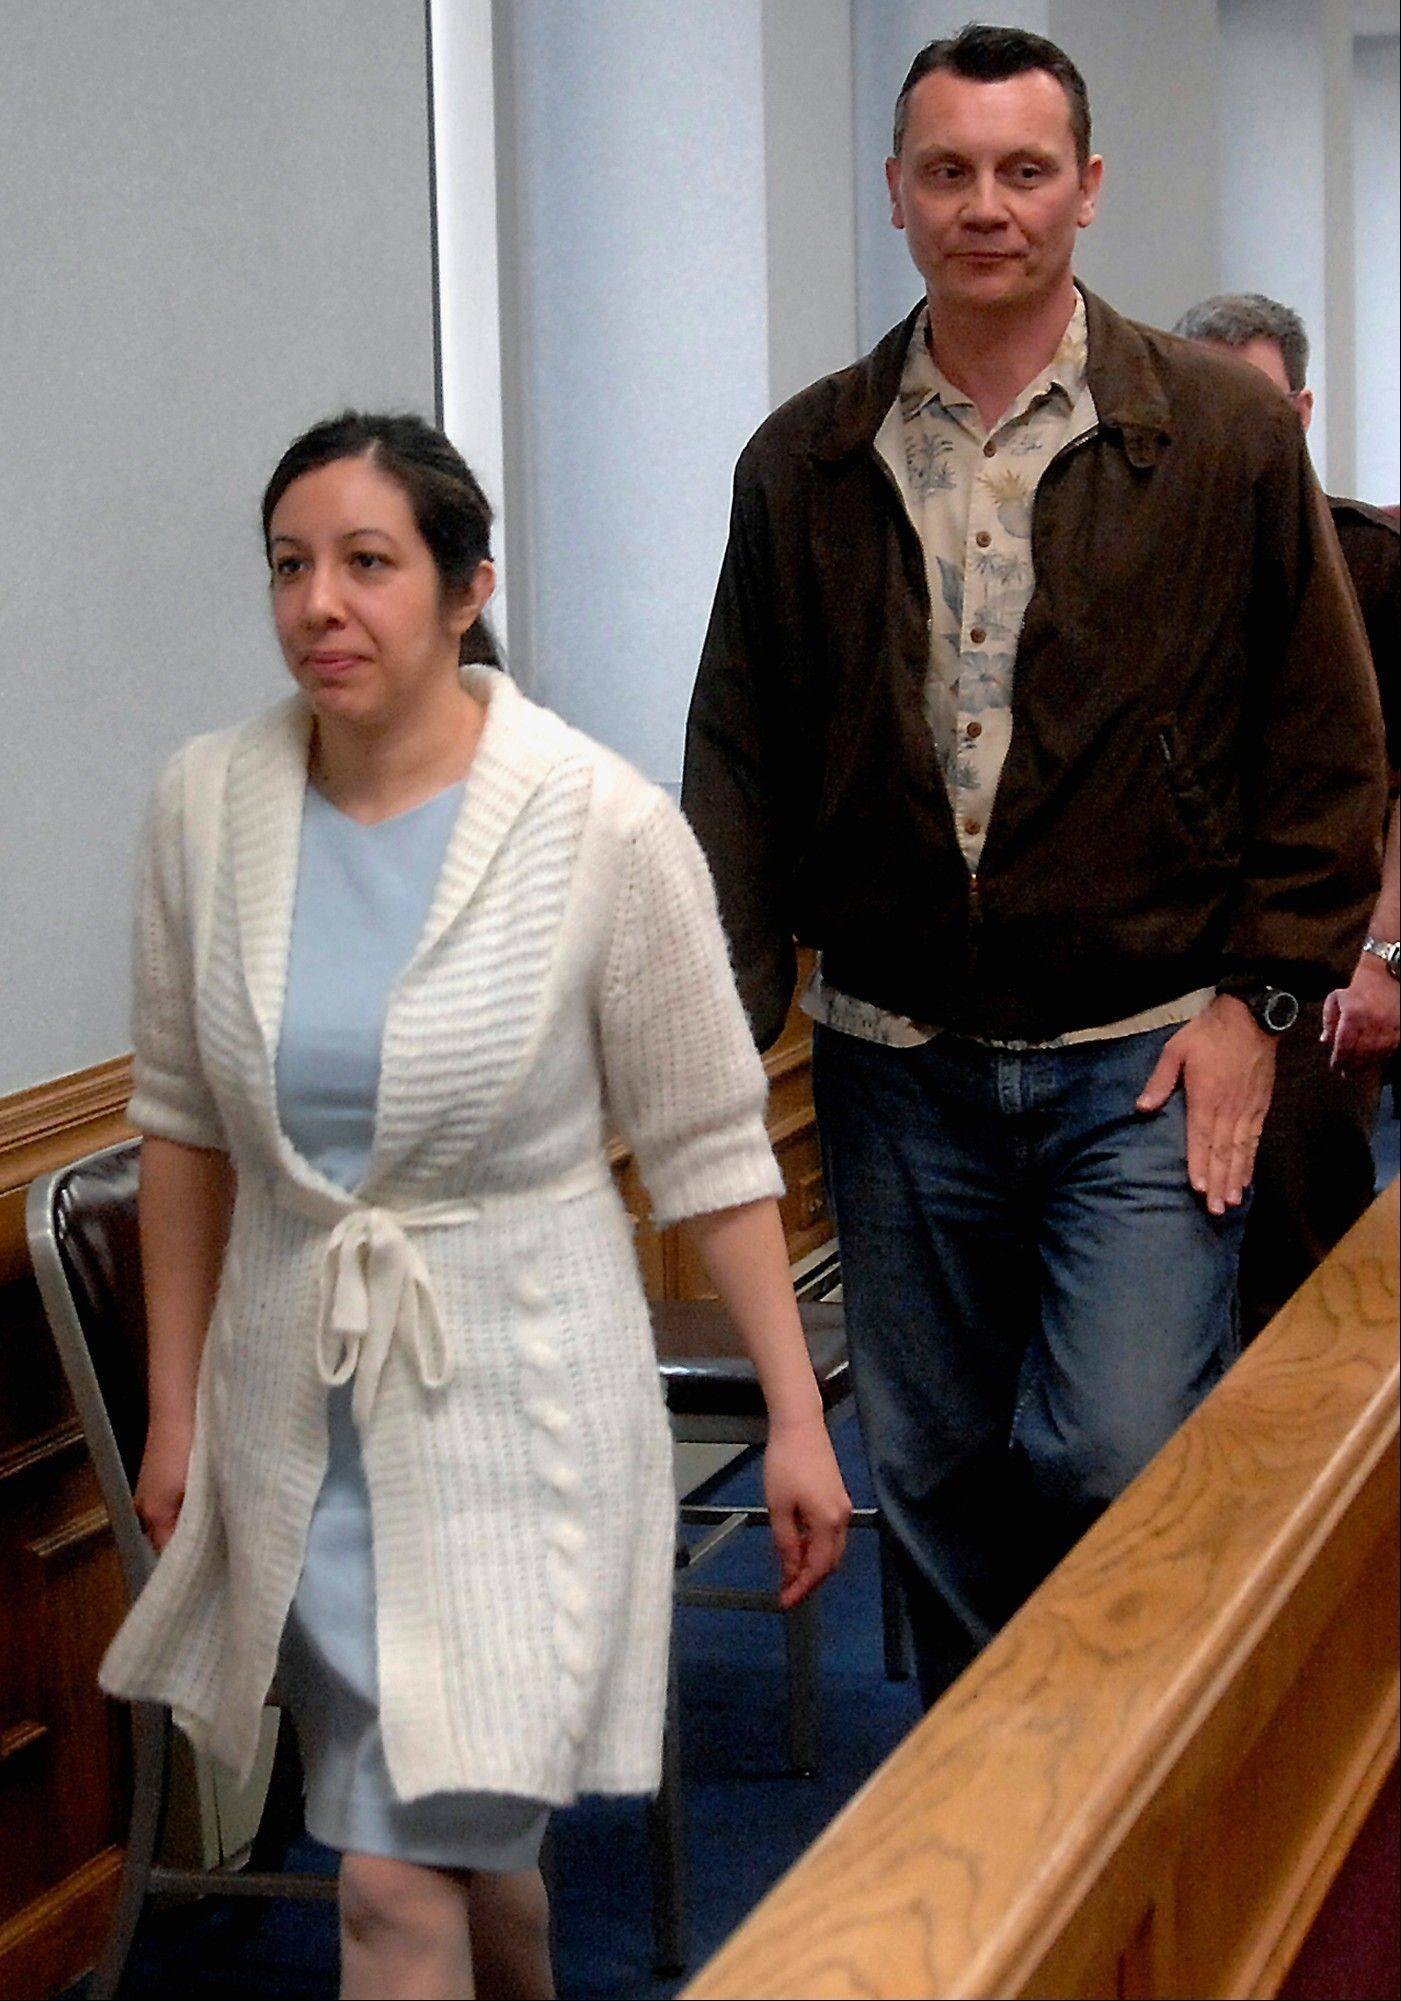 The Wisconsin Supreme Court ruled that Leilani and Dale Neumann, who prayed instead of seeking medical help as their 11-year-old daughter Madeline Kara Neumann died in front of them, were properly convicted of homicide. Their daughter died of undiagnosed diabetes in March 2008.